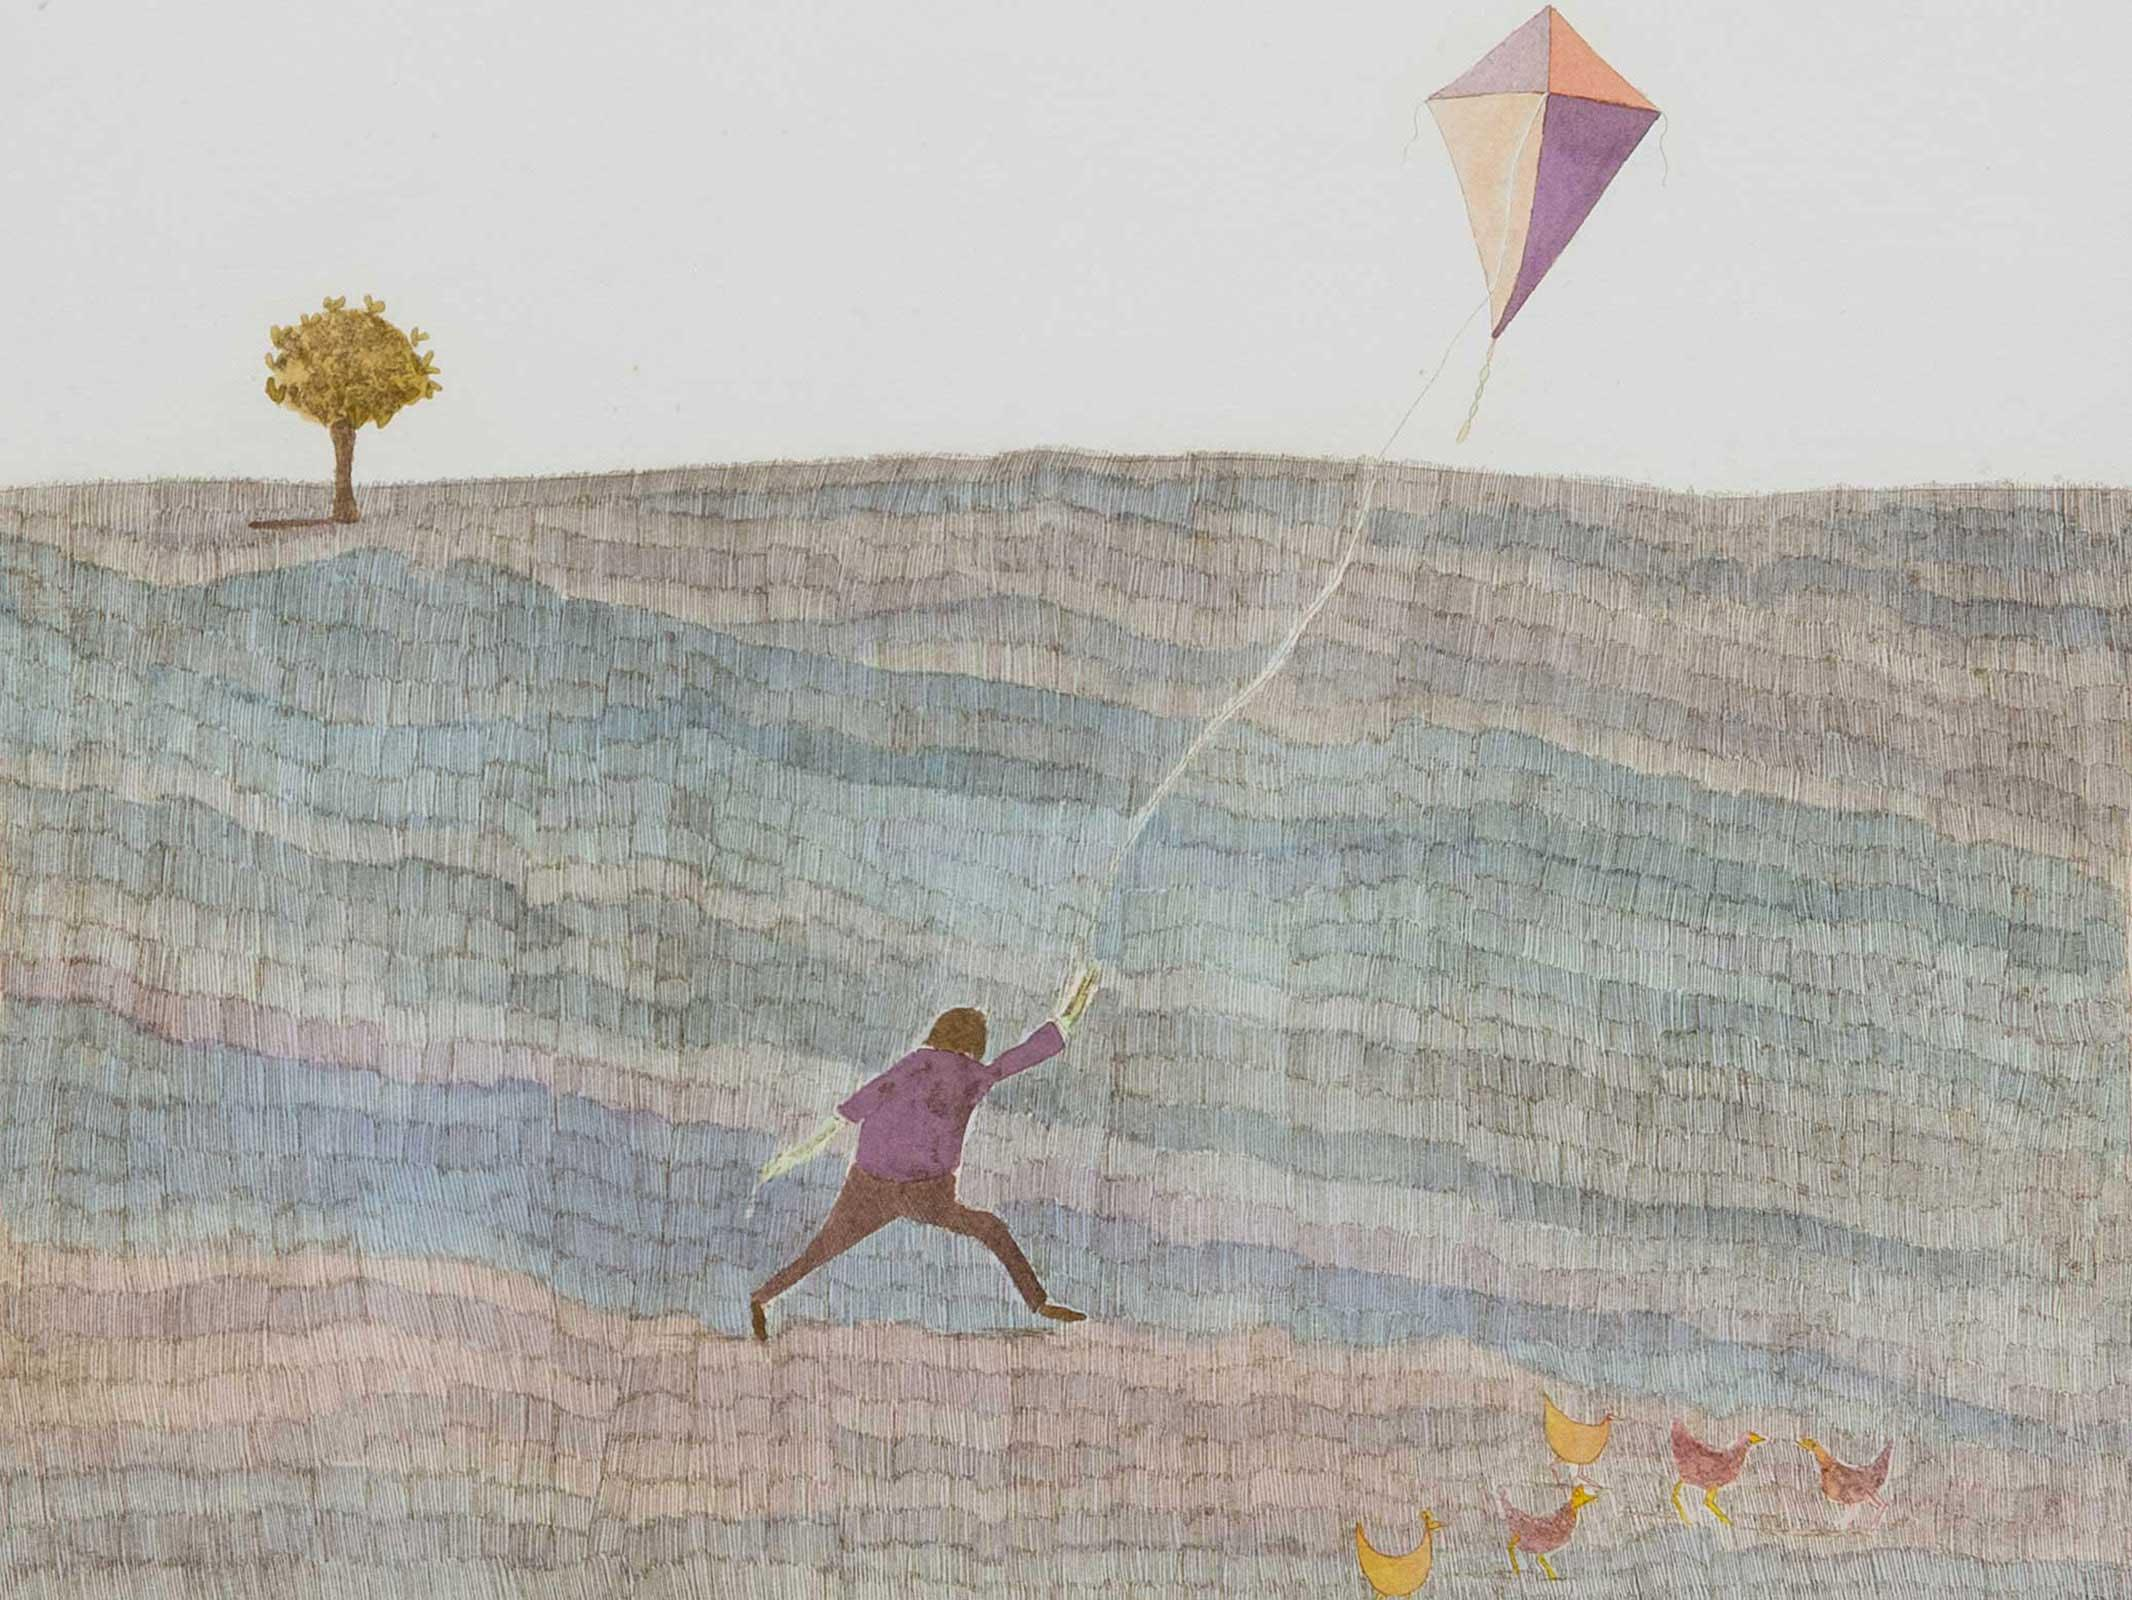 Pieter van der Westhuizen (SA 1931 - 2008) Etching, Kite Flyer, Signed Dated '95 & Numbered 54/120 in Pencil, 42 x 48